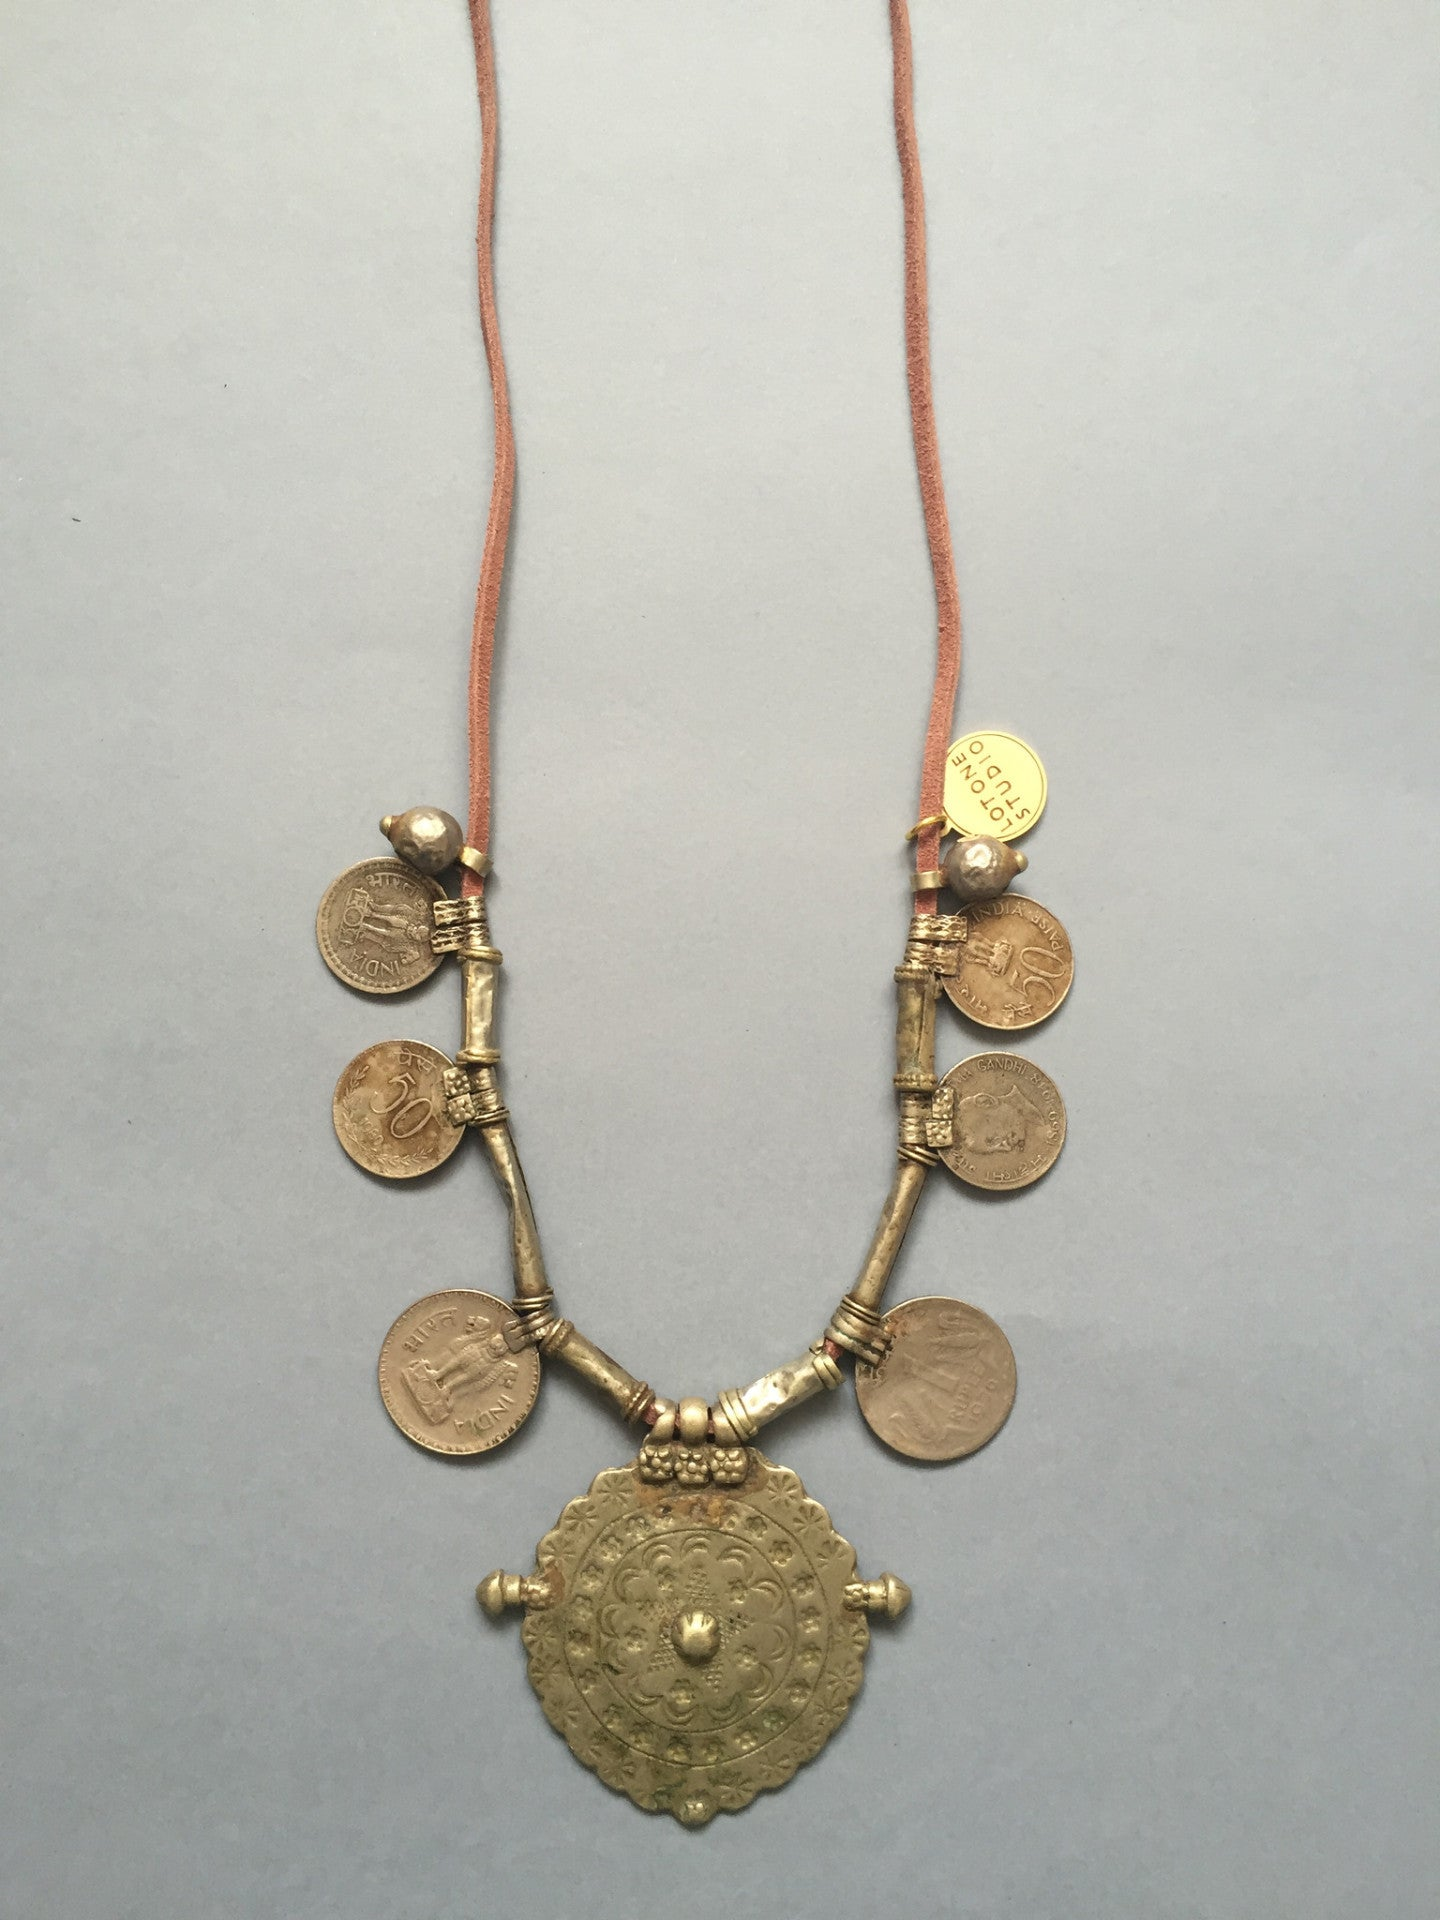 Golos coin jewelry online india - Wanchain ico release date